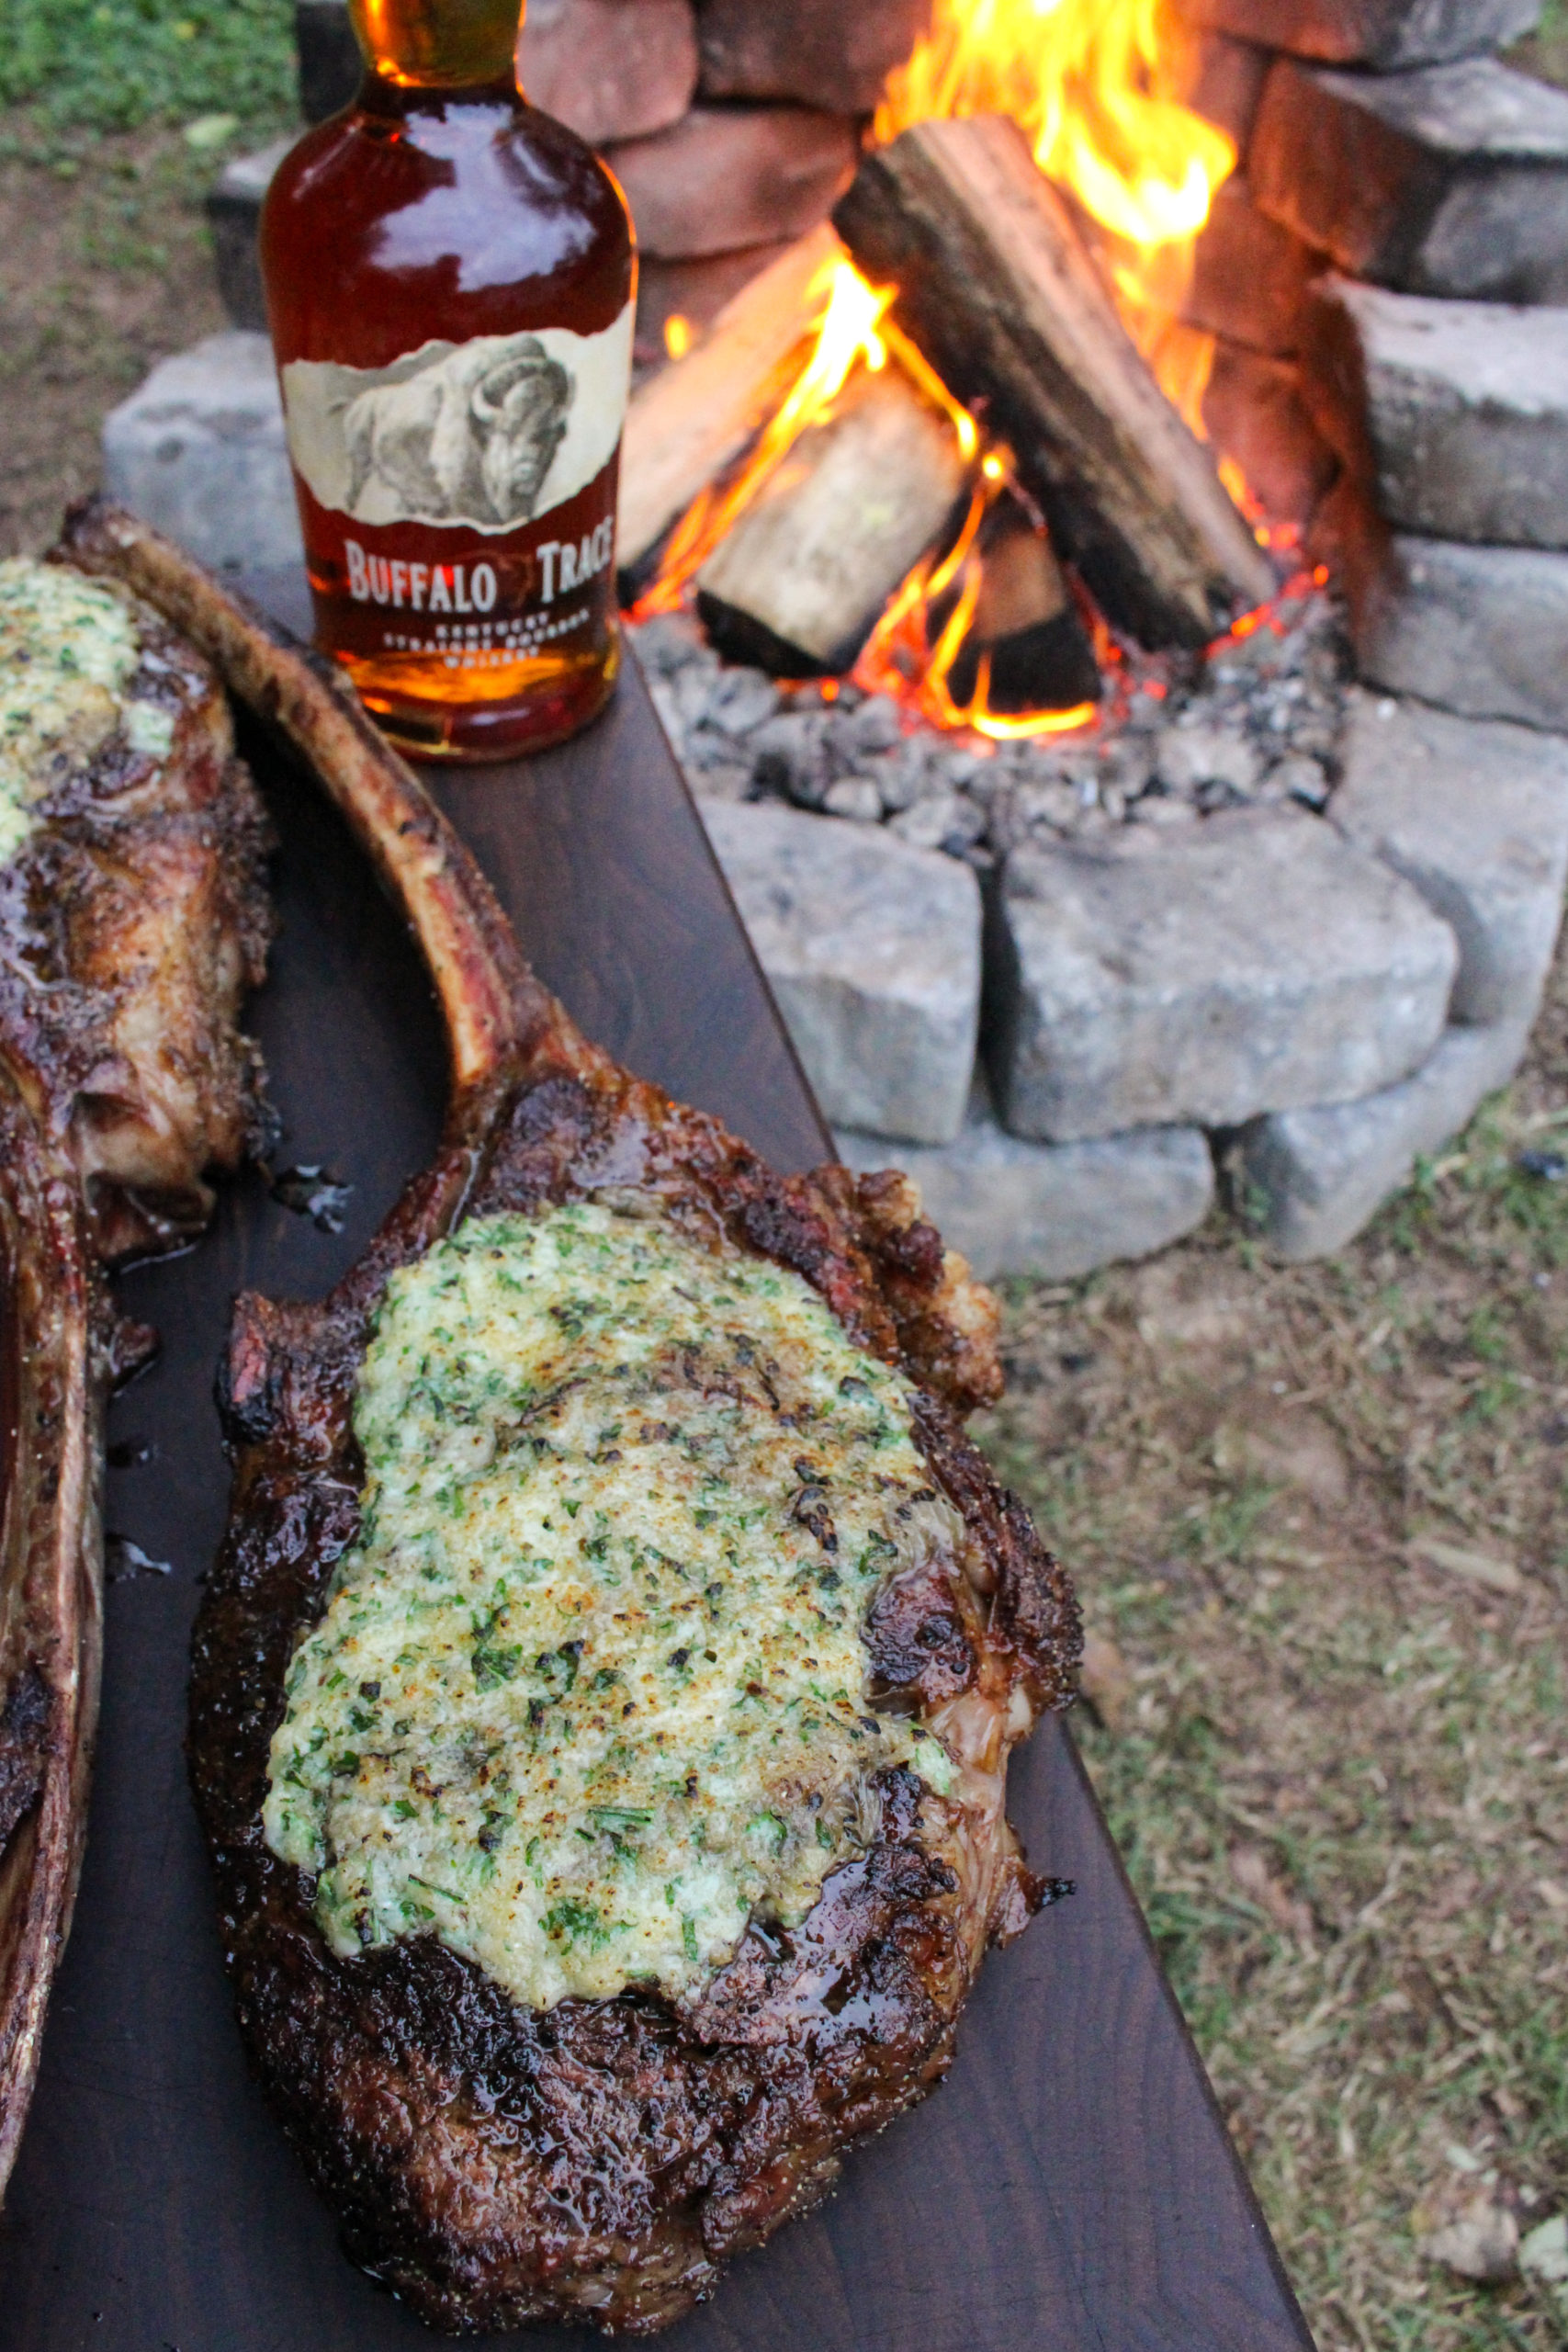 Tomahawk Steaks with French Onion Crust with Buffalo Trace.